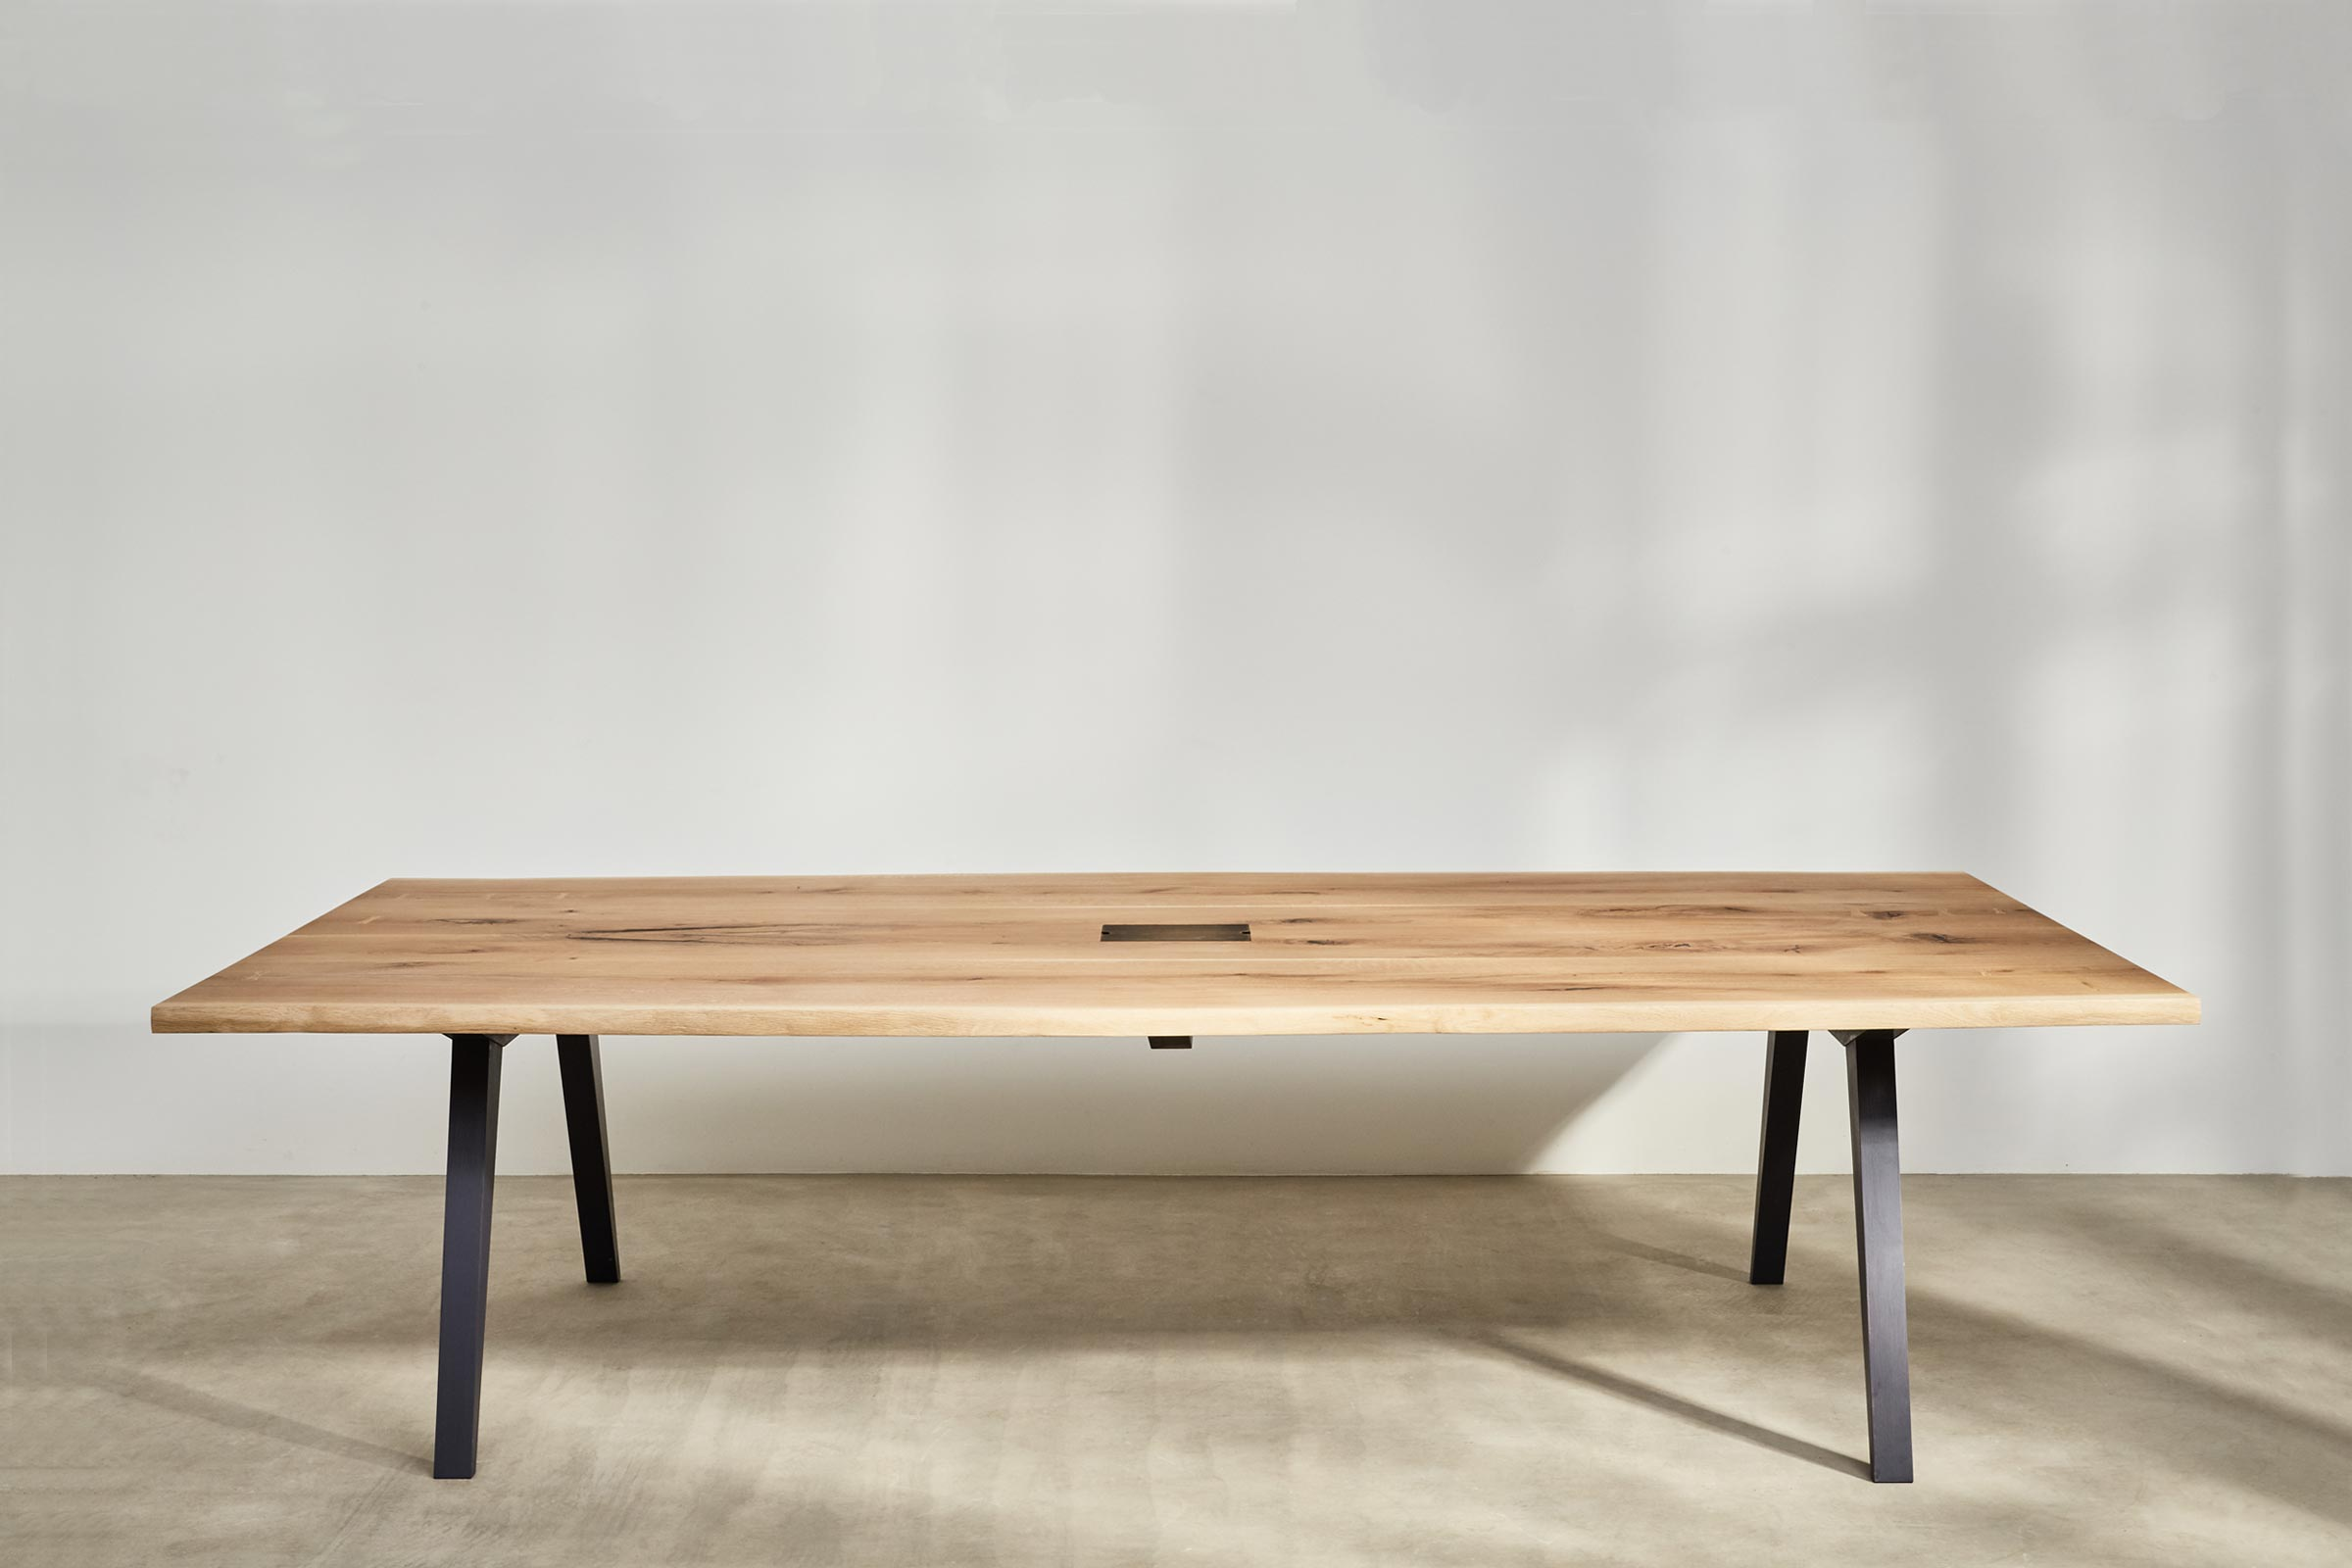 waney edge meeting table made from oak